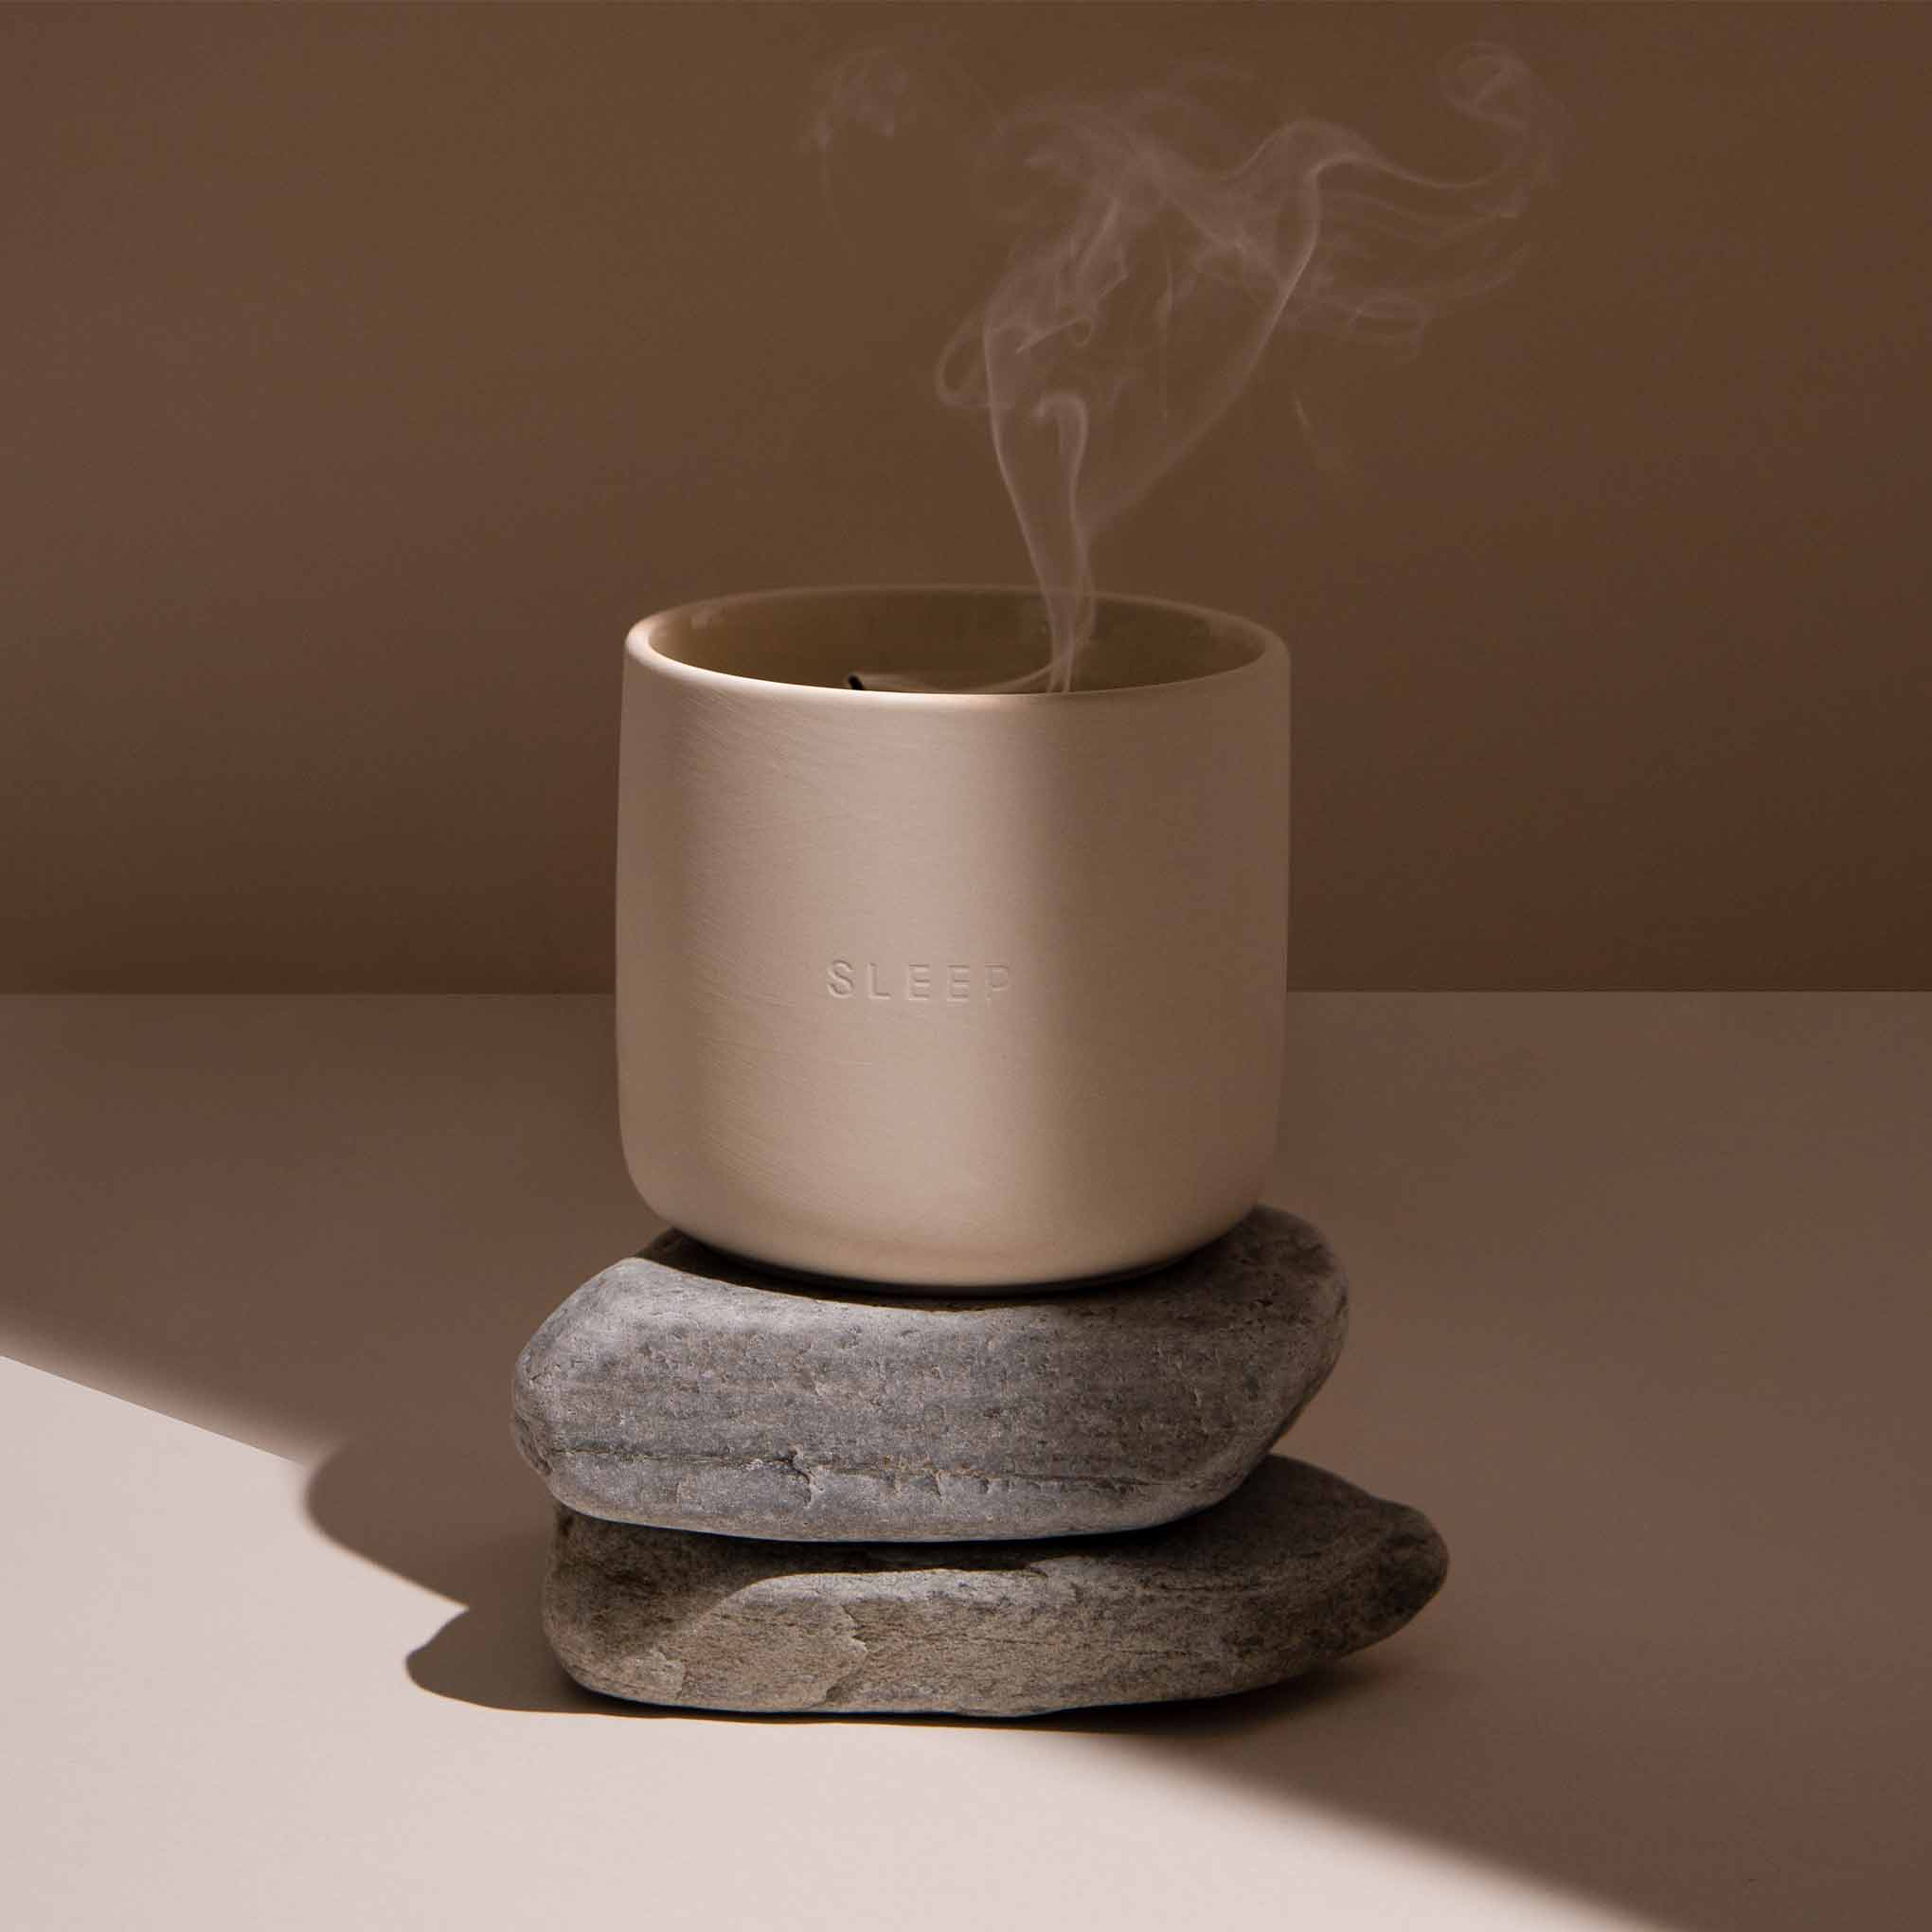 Candle in ceramic jar with smoke rising from the wick